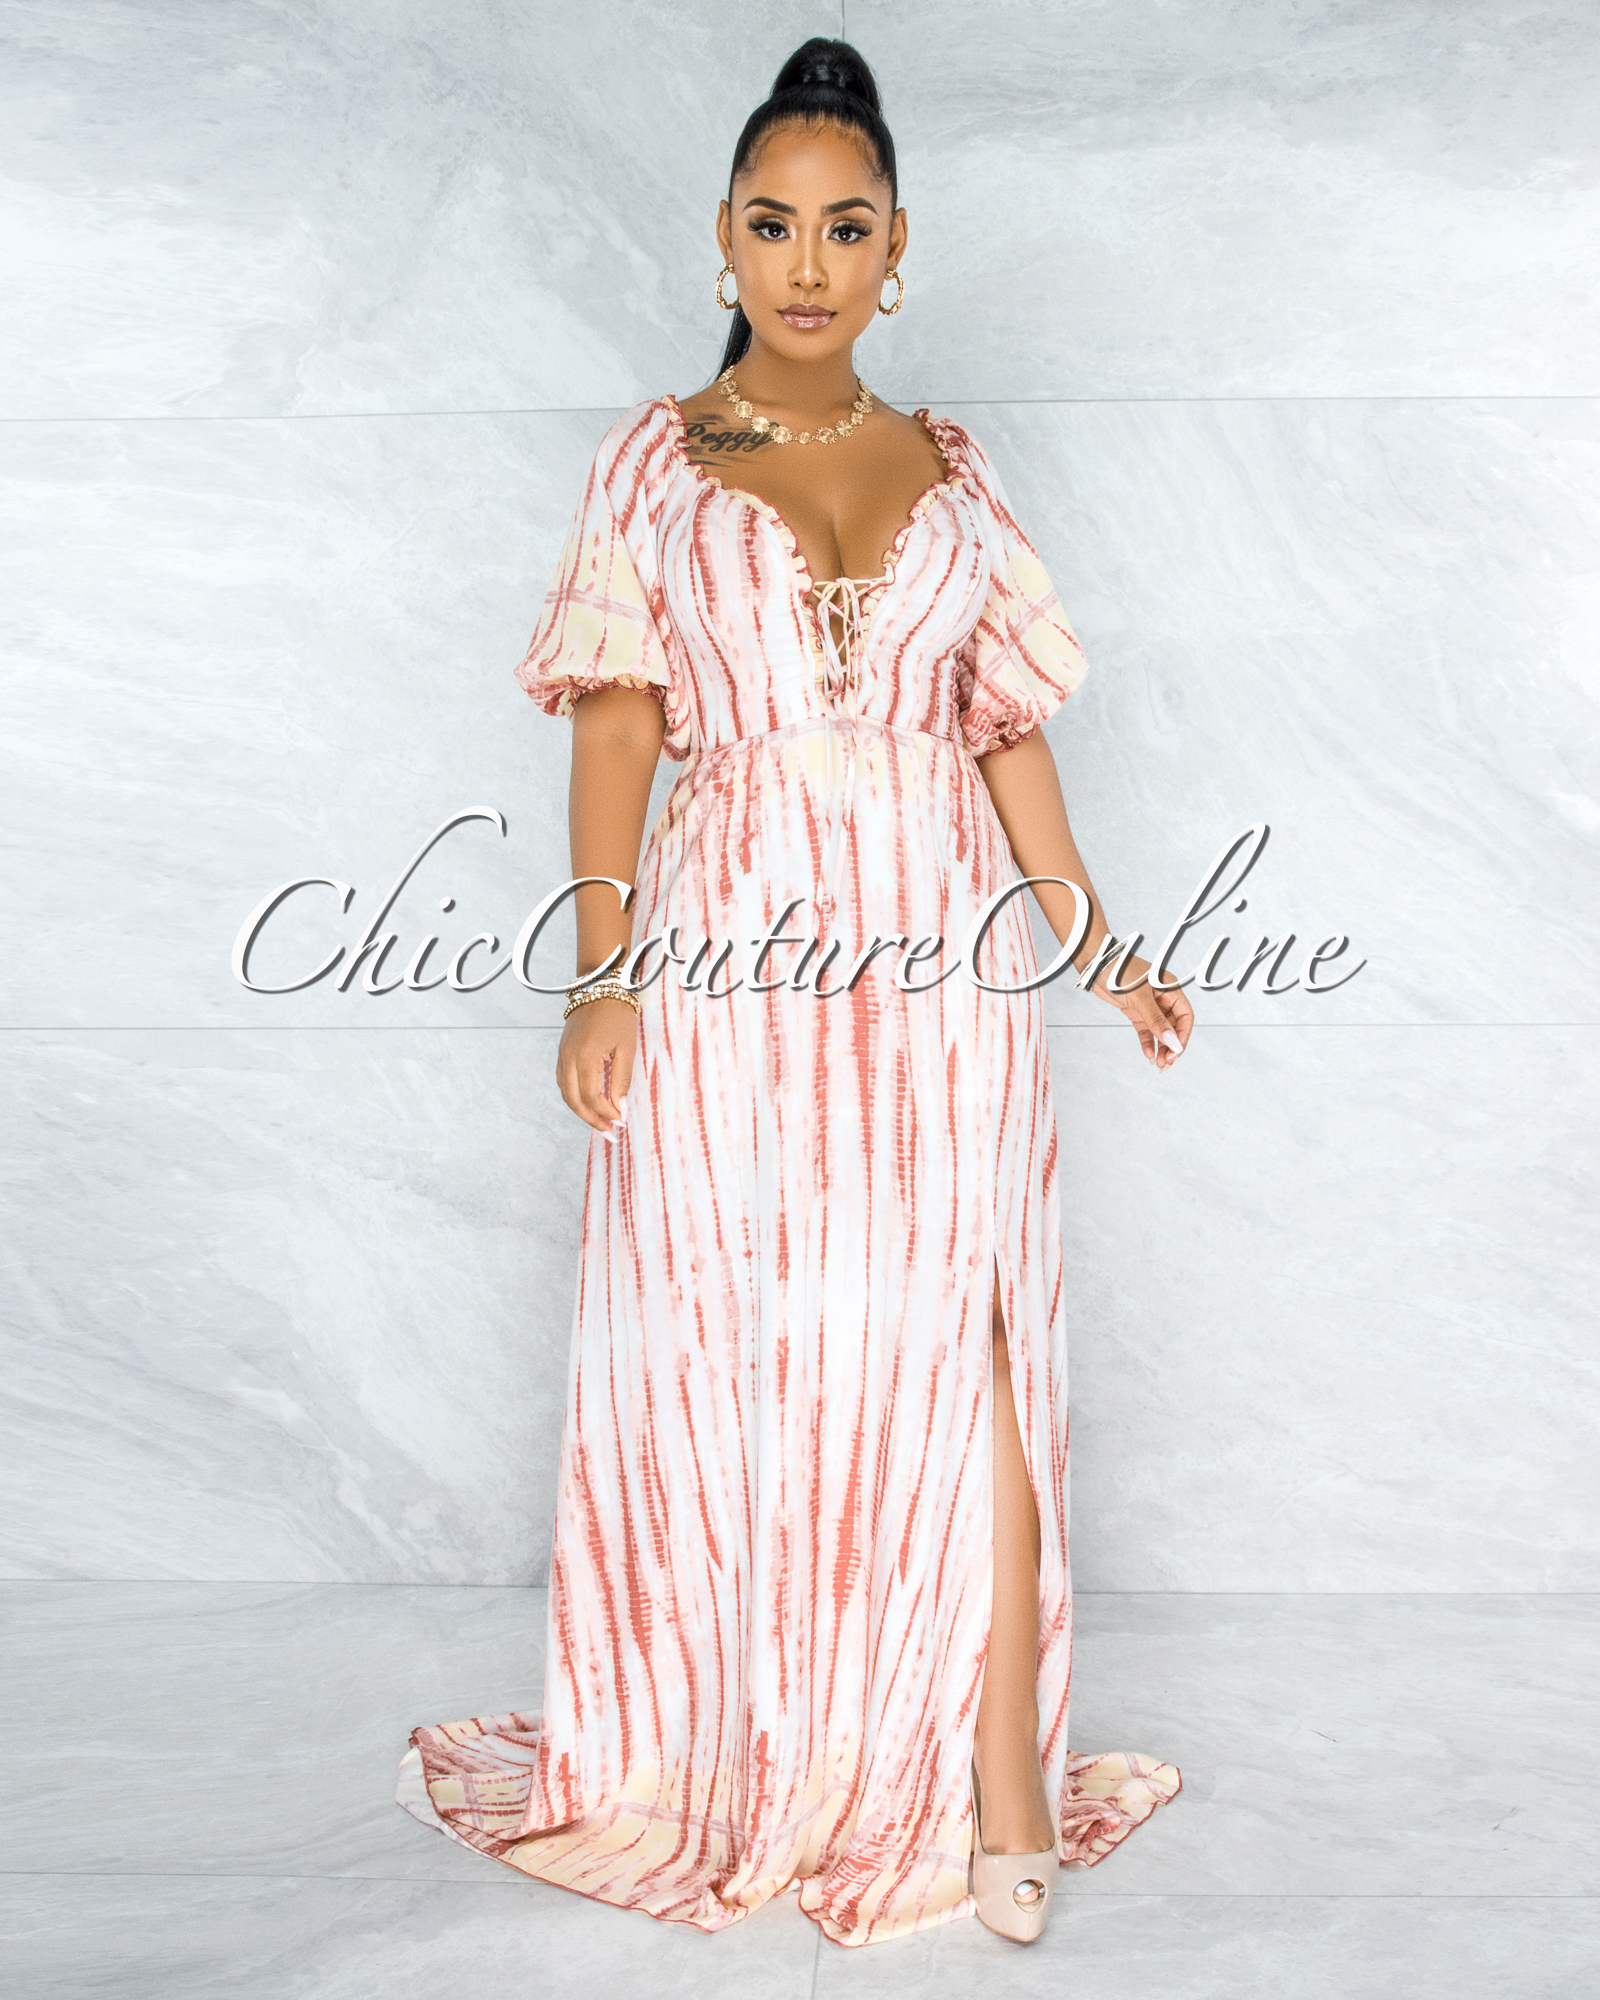 Octavia Pink Tie-Dye Lace-Up Top Off-The Shoulder Maxi Dress